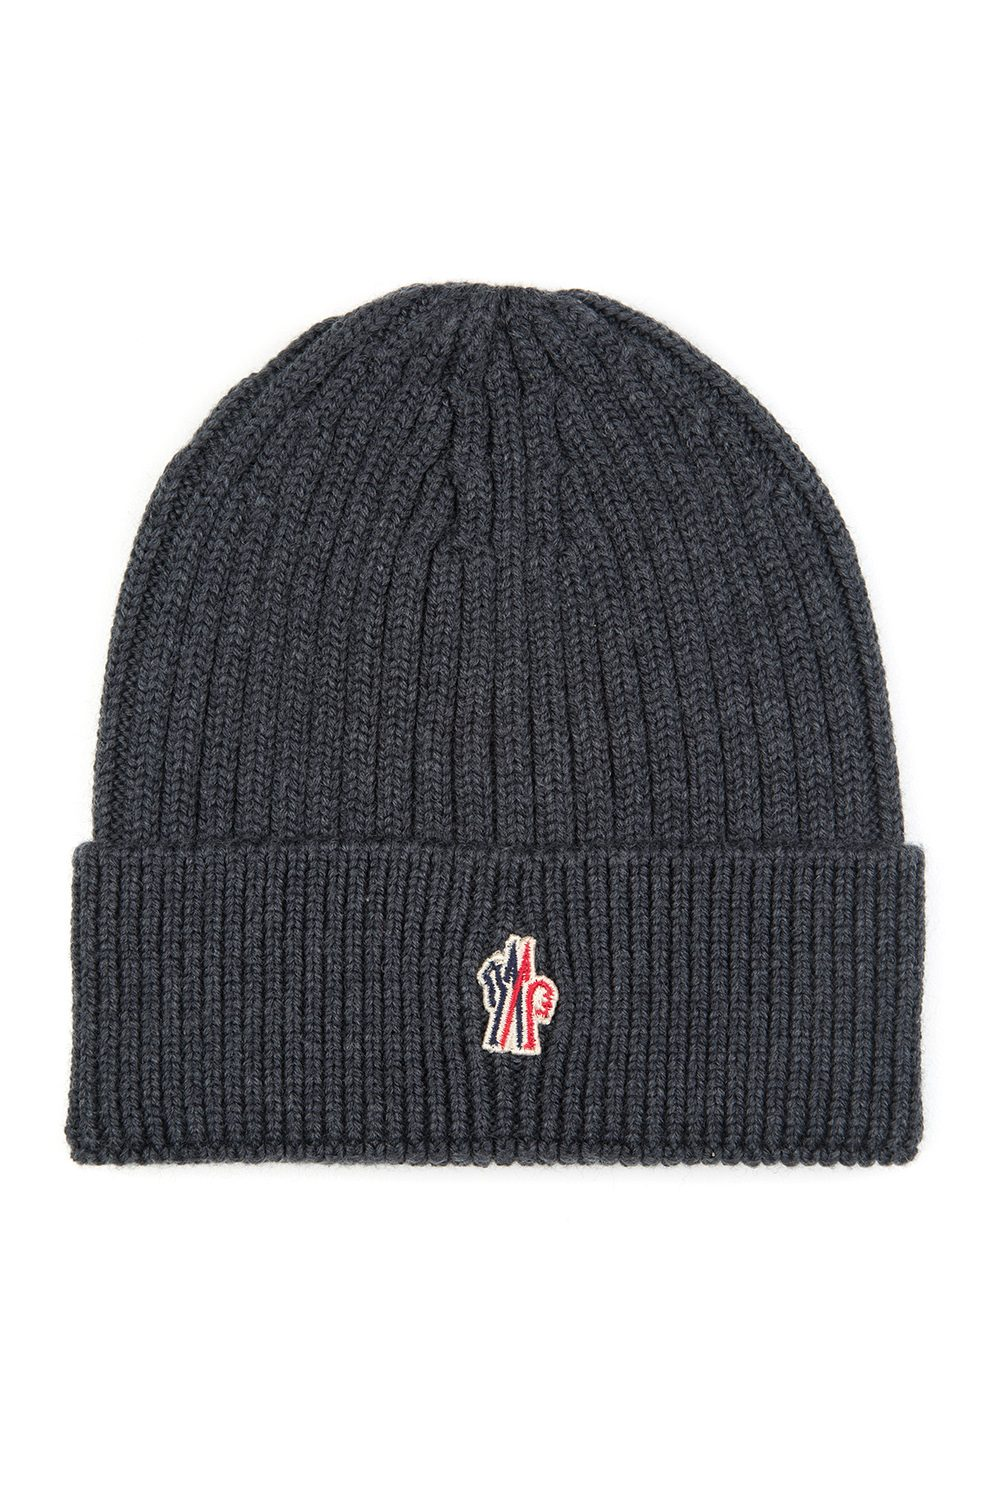 Moncler Grenoble Men s Ribbed Beanie Hat Grey - Linea Fashion b4e8eae863a